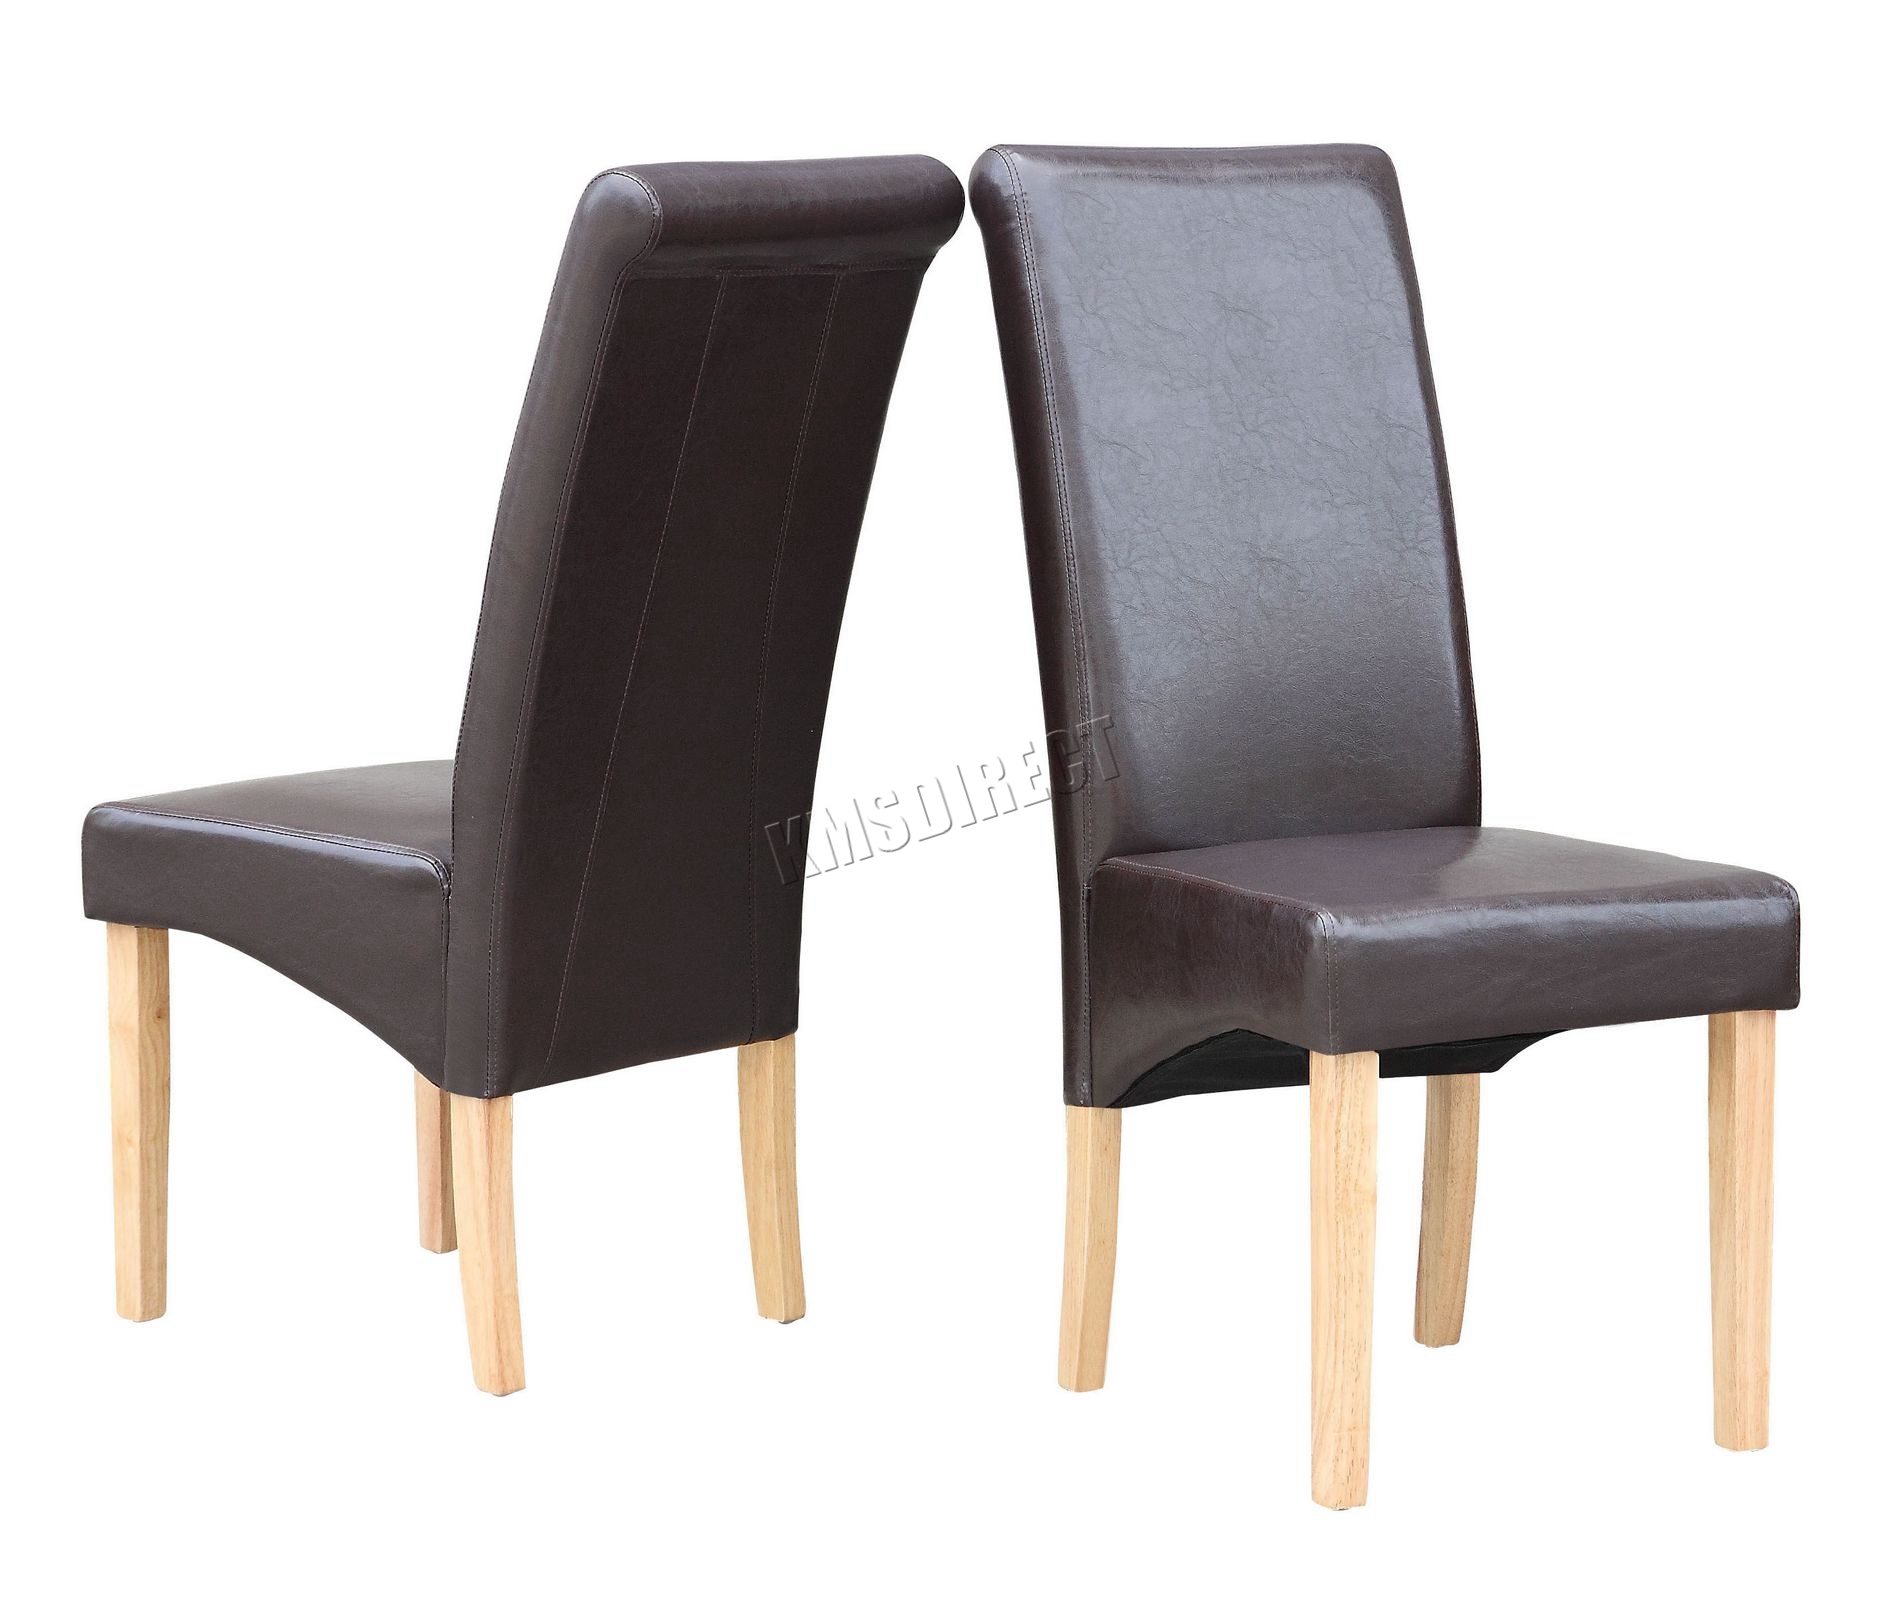 New brown faux leather dining chairs roll top scroll high for Faux leather dining chairs